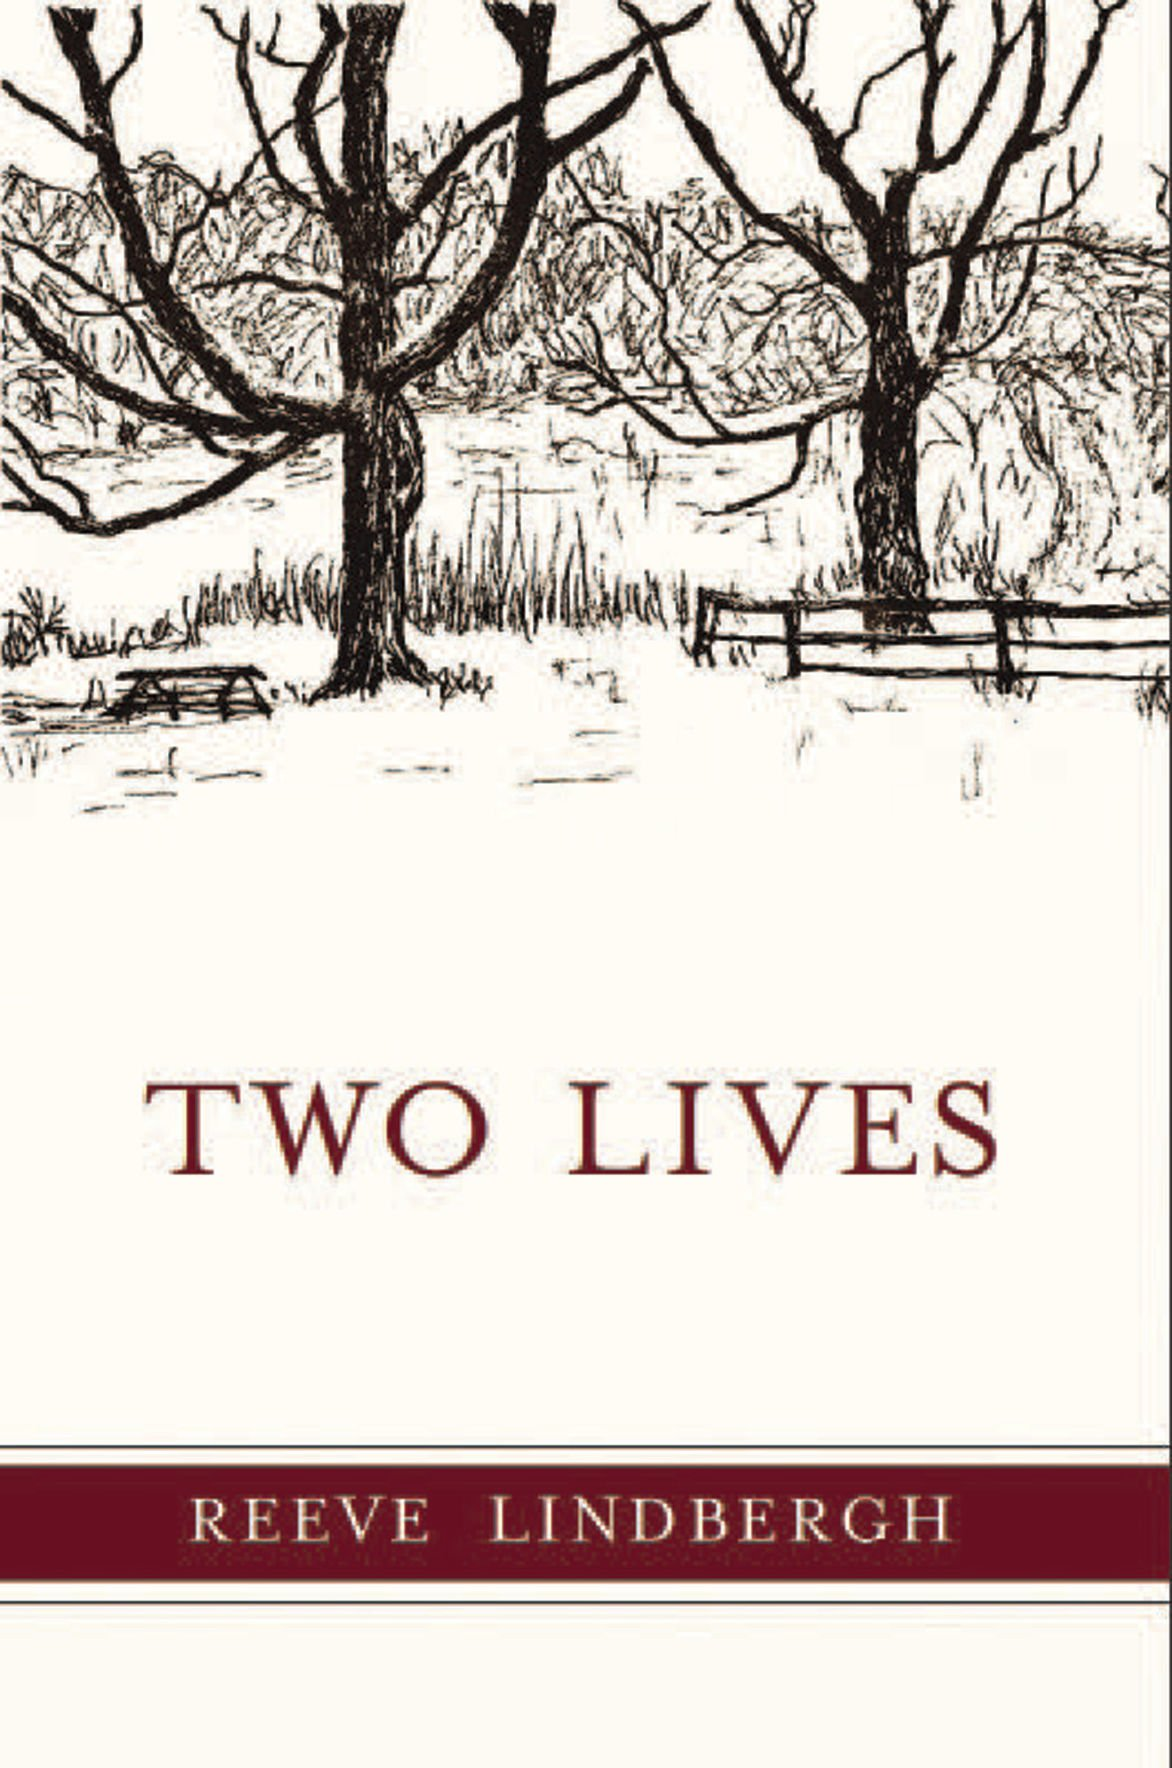 Leading two lives: Author Reeve Lindbergh tours with her latest